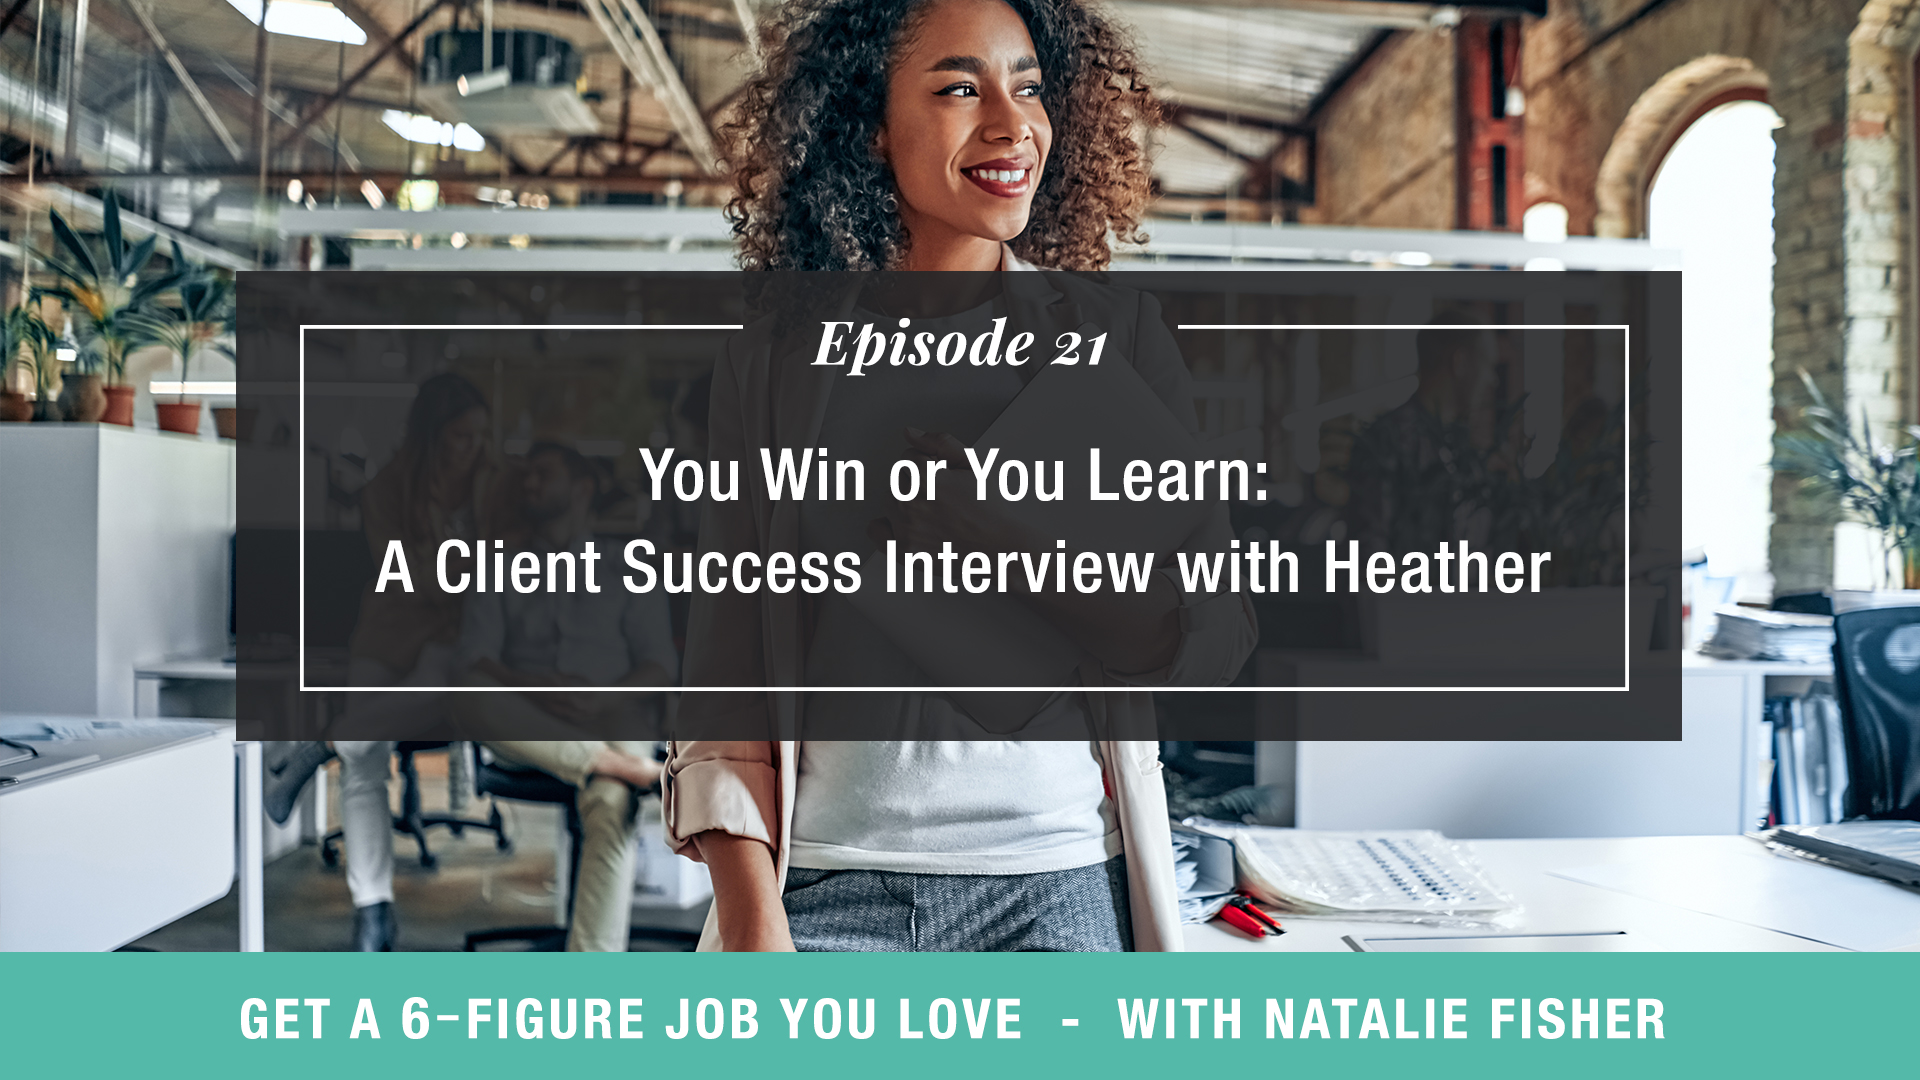 You Win or You Learn: A Client Success Interview with Heather